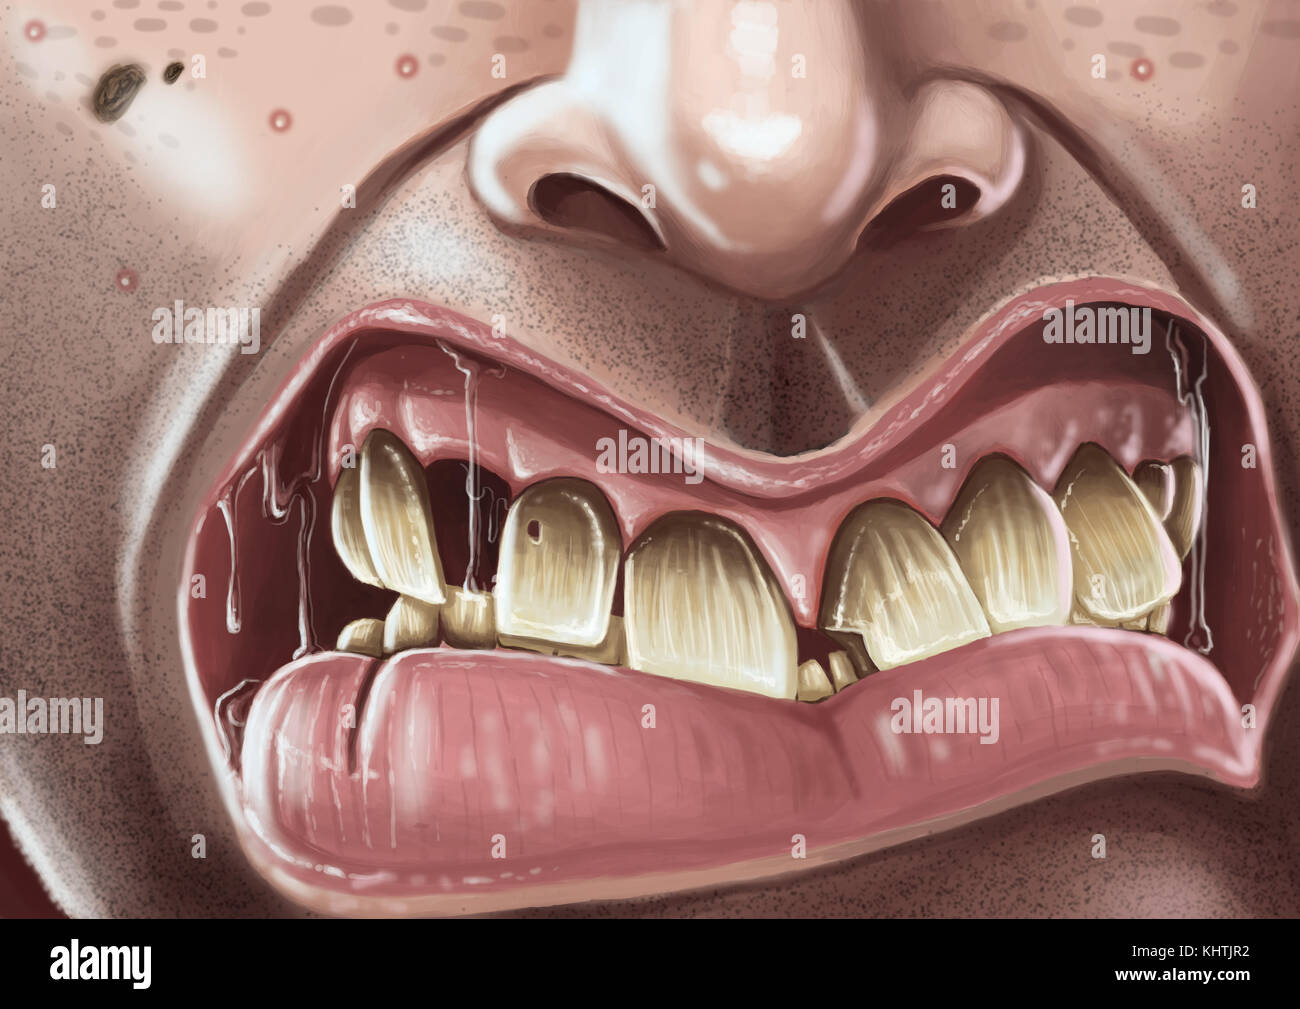 Digital illustration of close up of snarling mouth and rotten teeth. - Stock Image